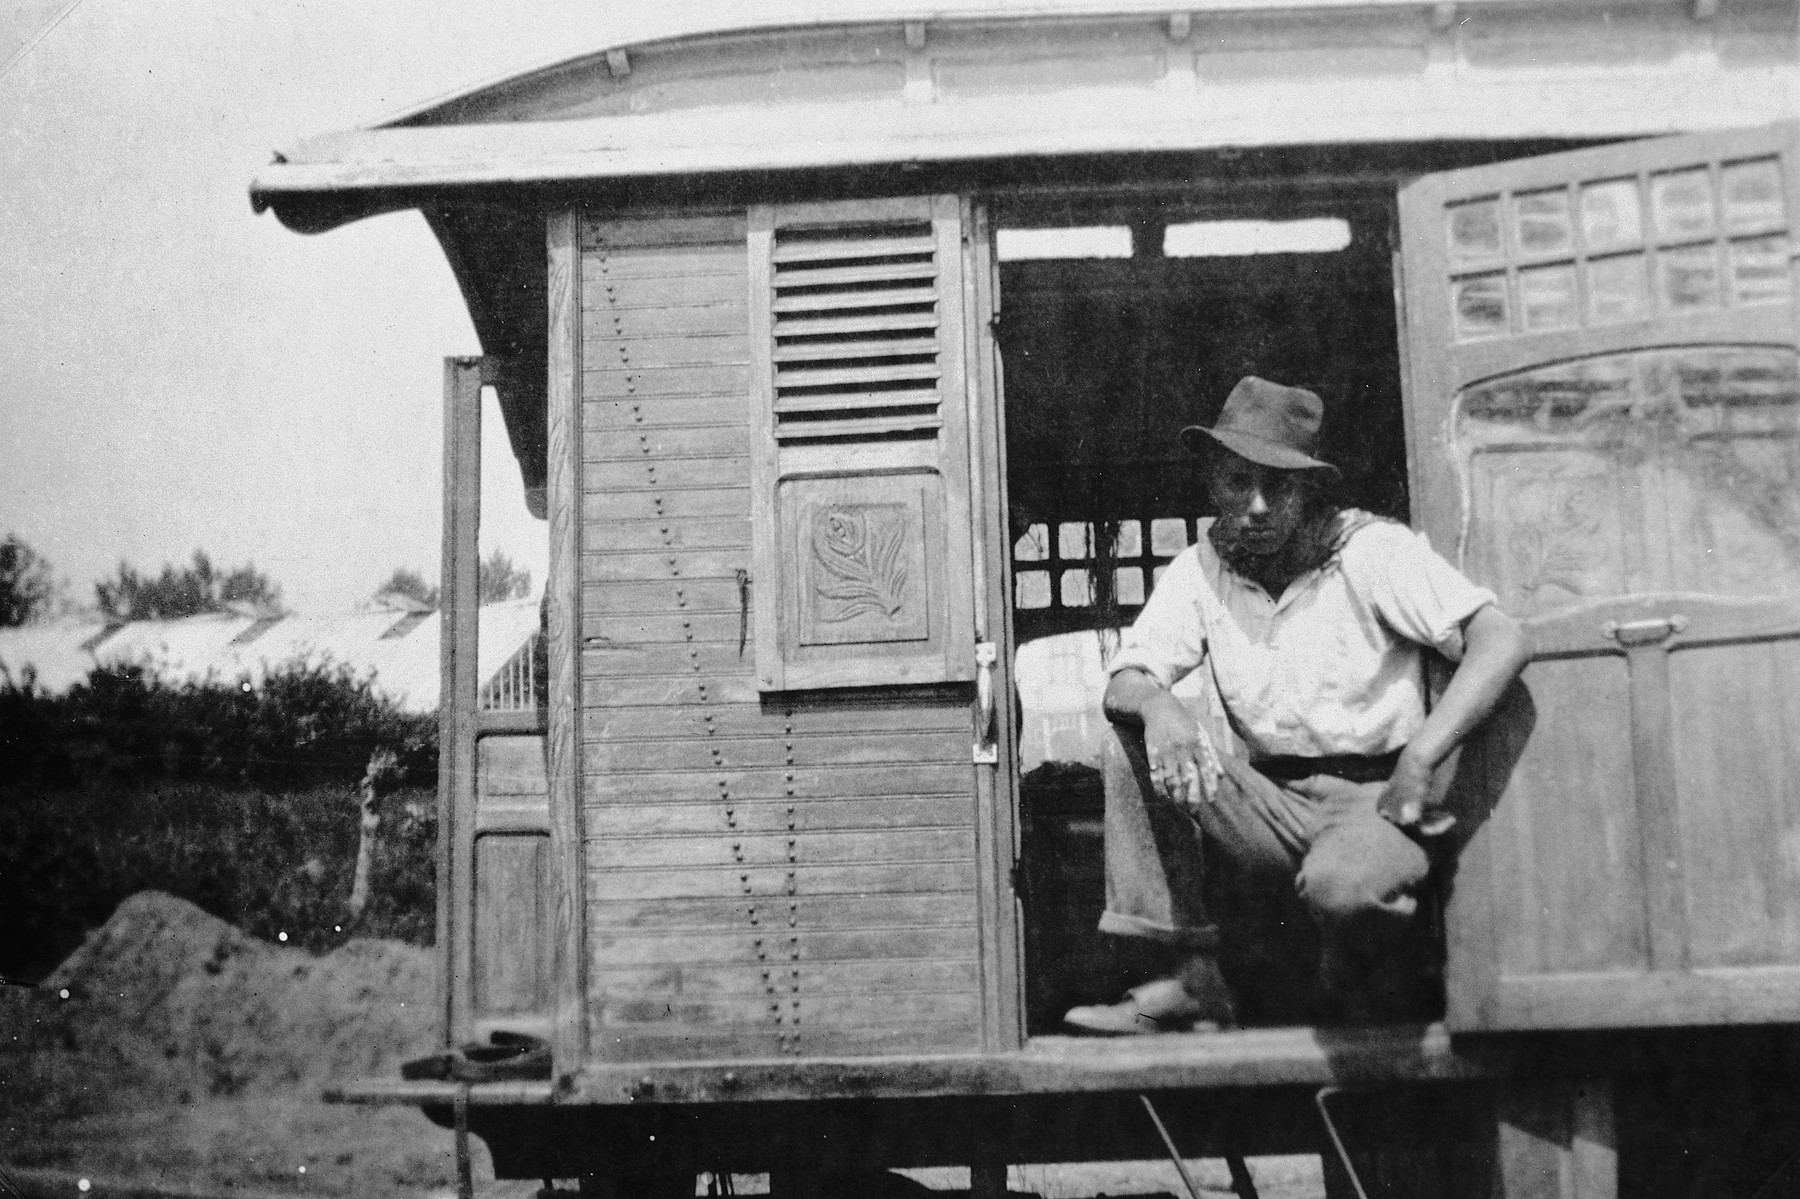 A Roma (Gypsy) man in the doorway of his caravan.